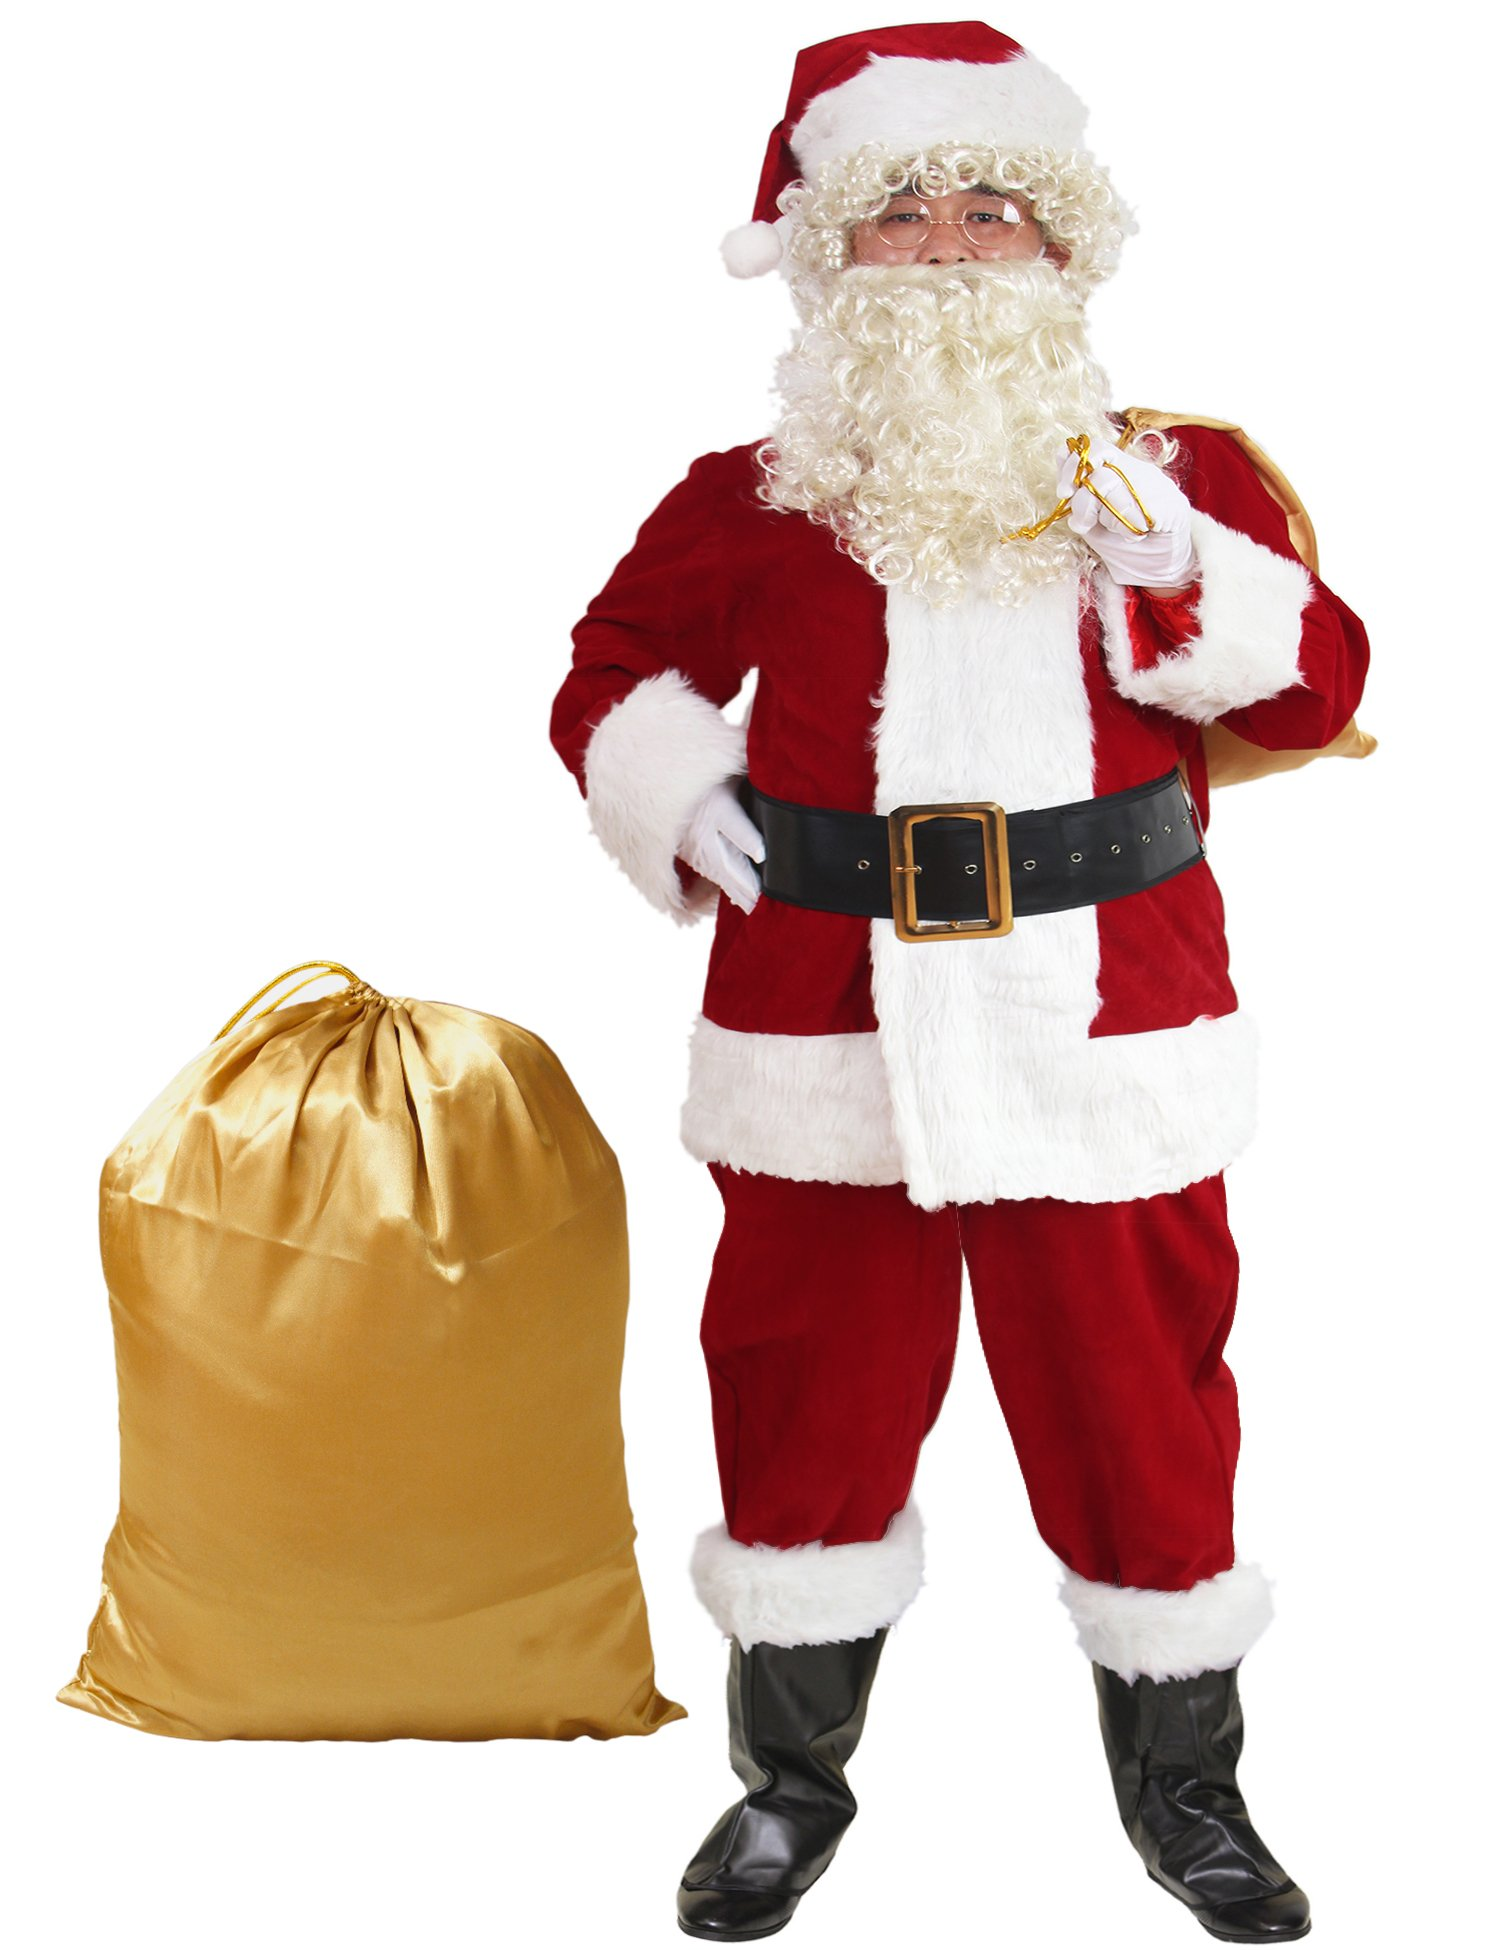 ADOMI Santa Suit 10pc. Plush Adult Costume (XXXL, Red)